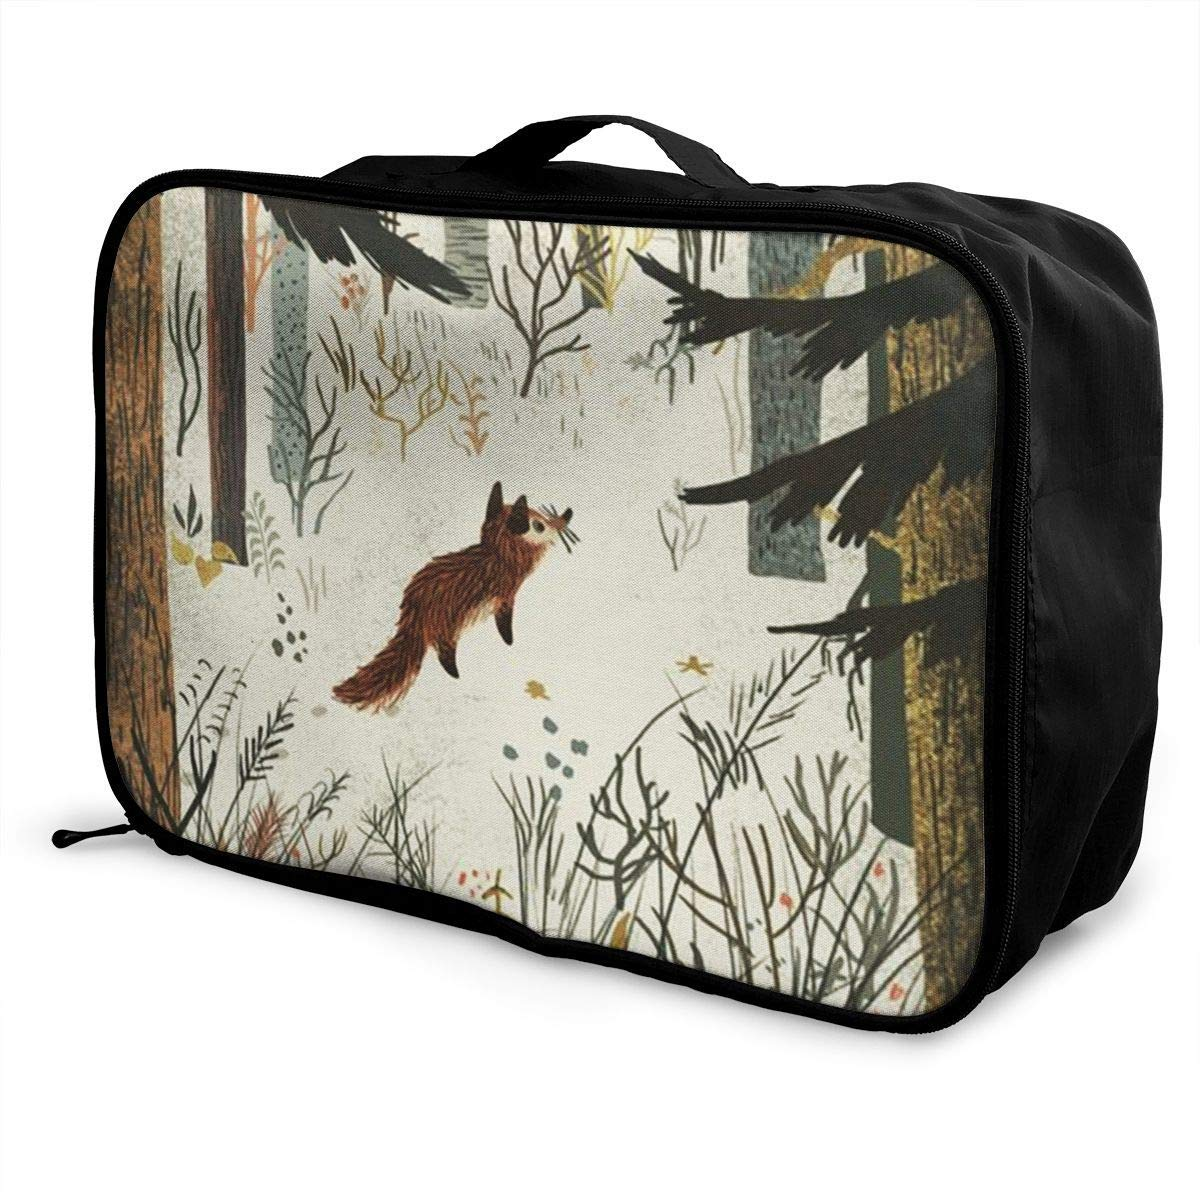 Portable Luggage Duffel Bag Animals And Forests Travel Bags Carry-on In Trolley Handle